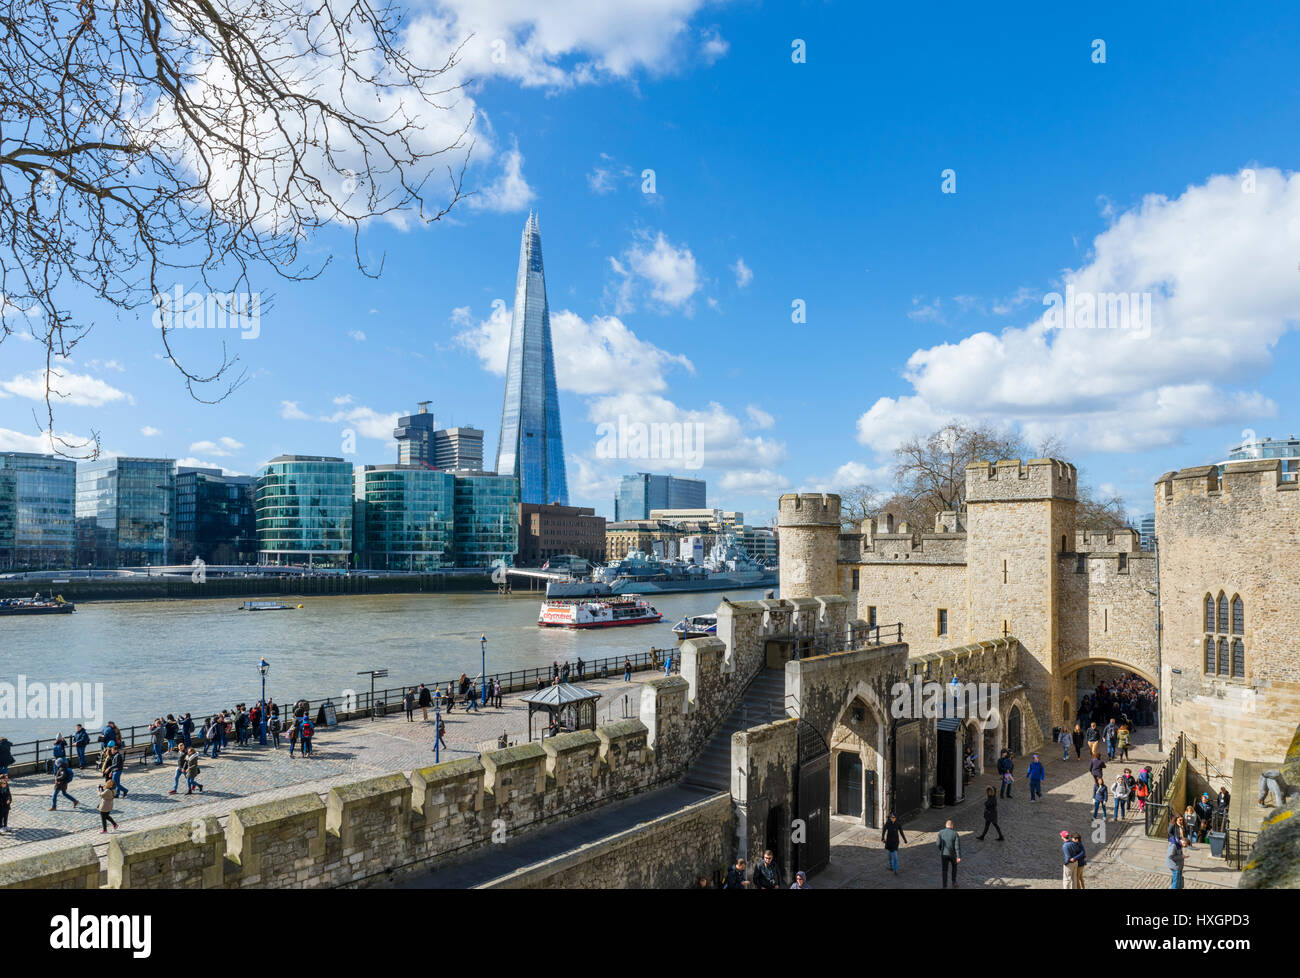 Tower of London. View over the River Thames from the Tower of London looking towards The Shard, London, England, Stock Photo